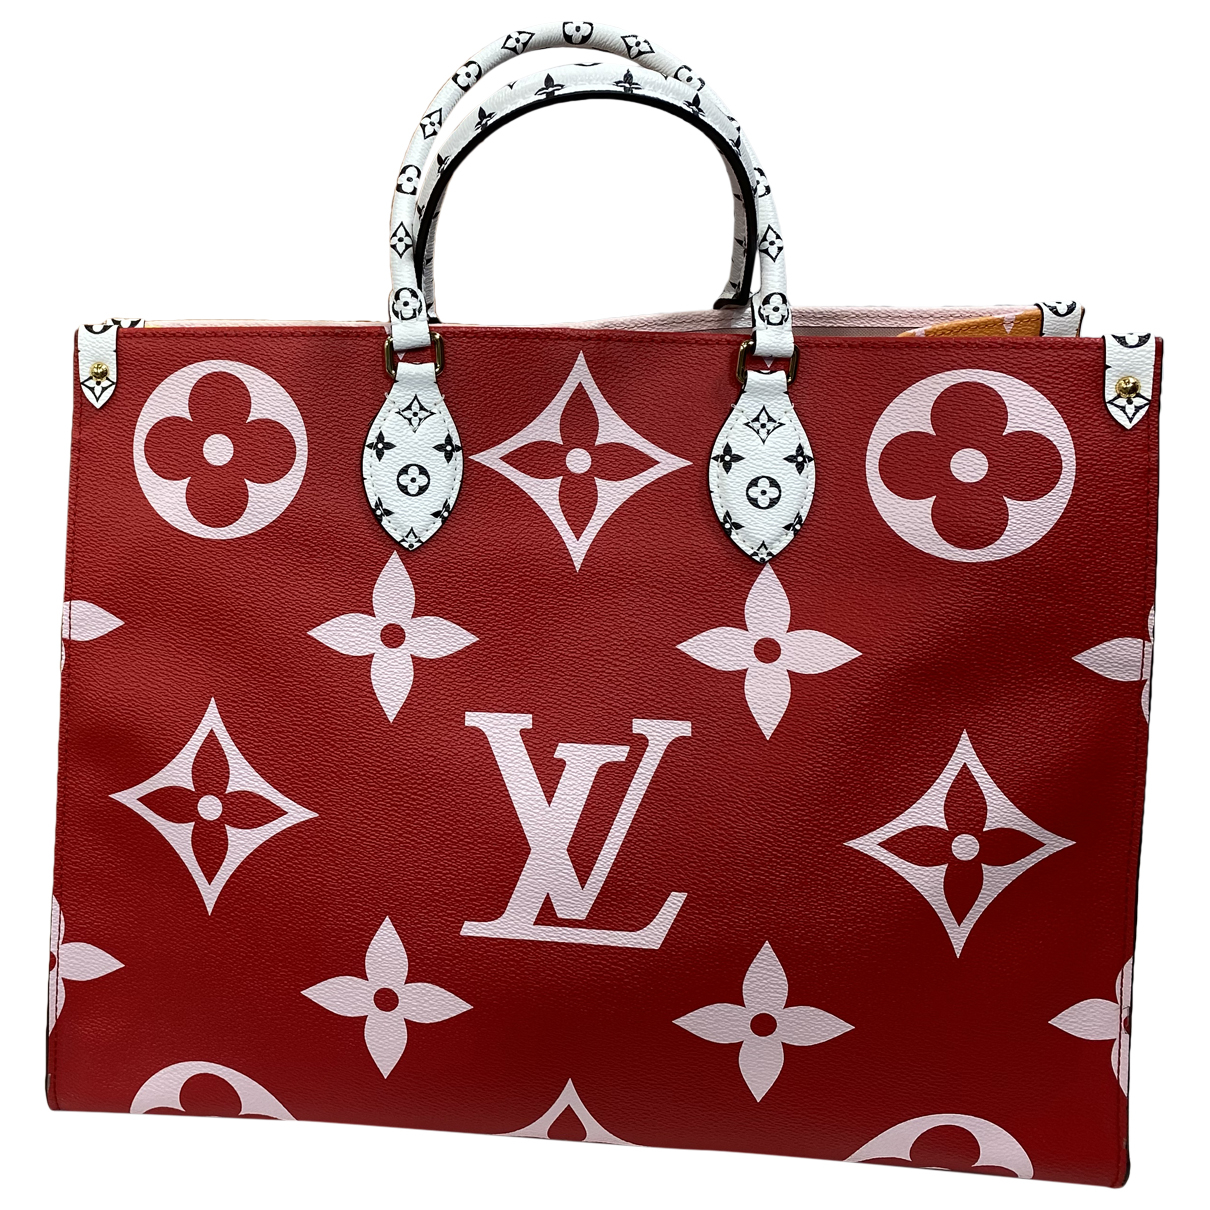 Louis Vuitton Onthego Red Cloth handbag for Women \N